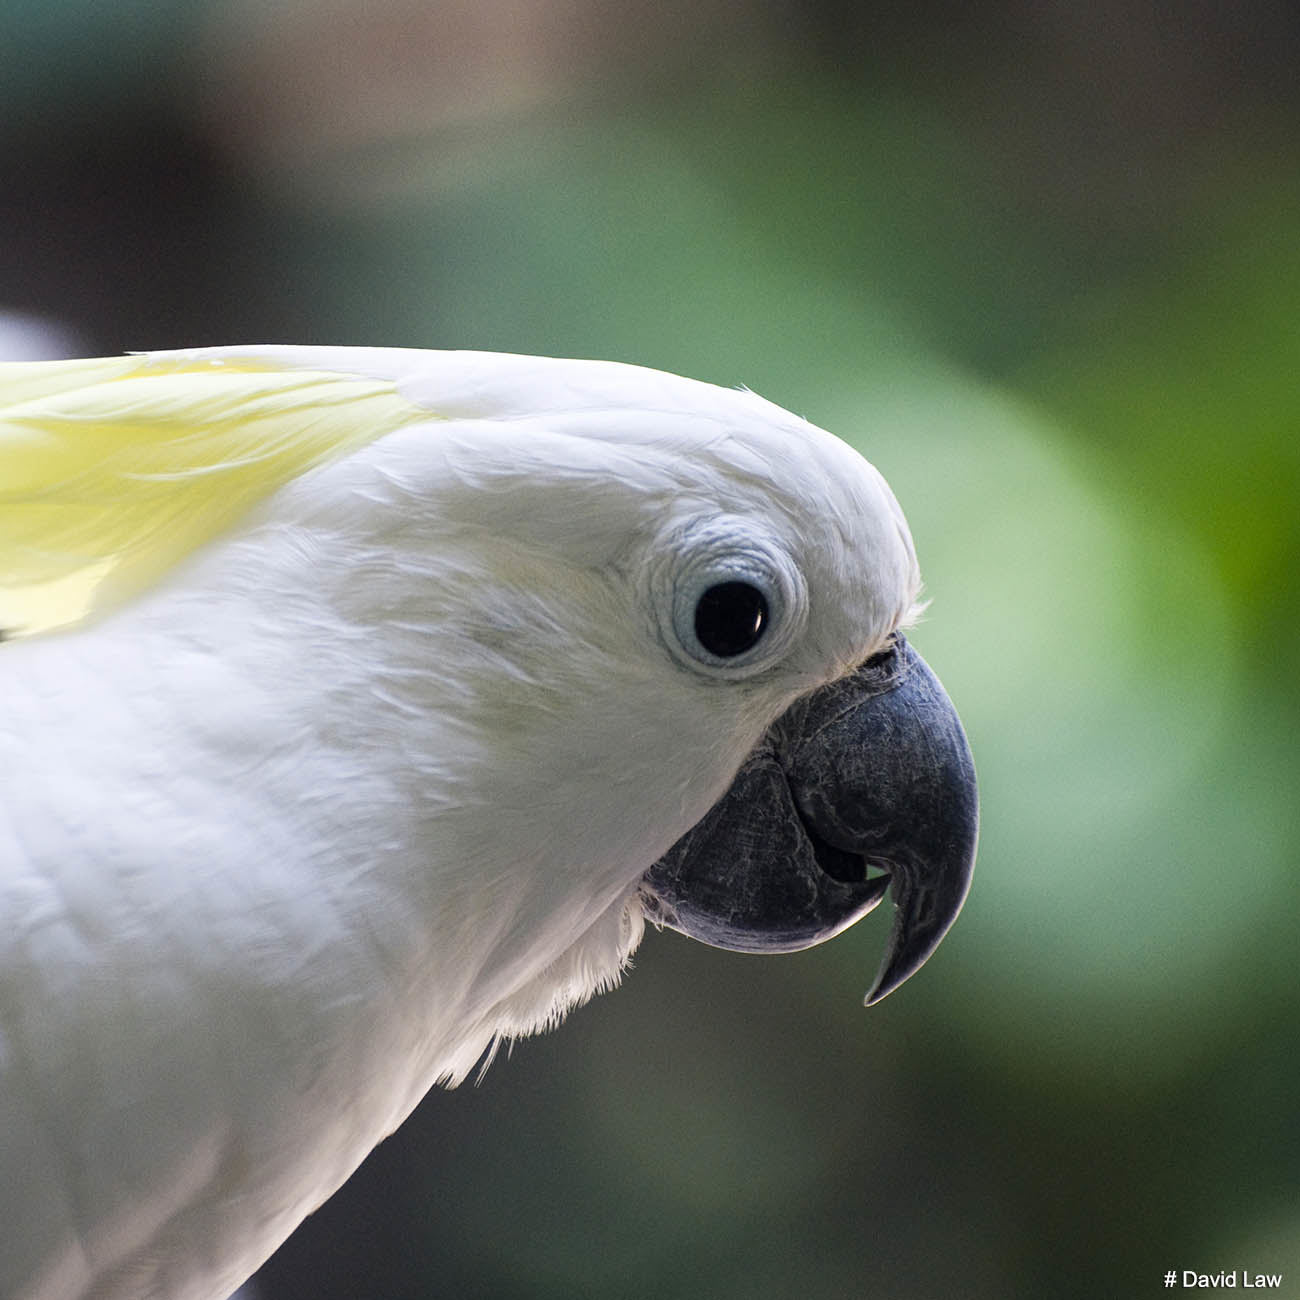 White Parrot Square wns s0220